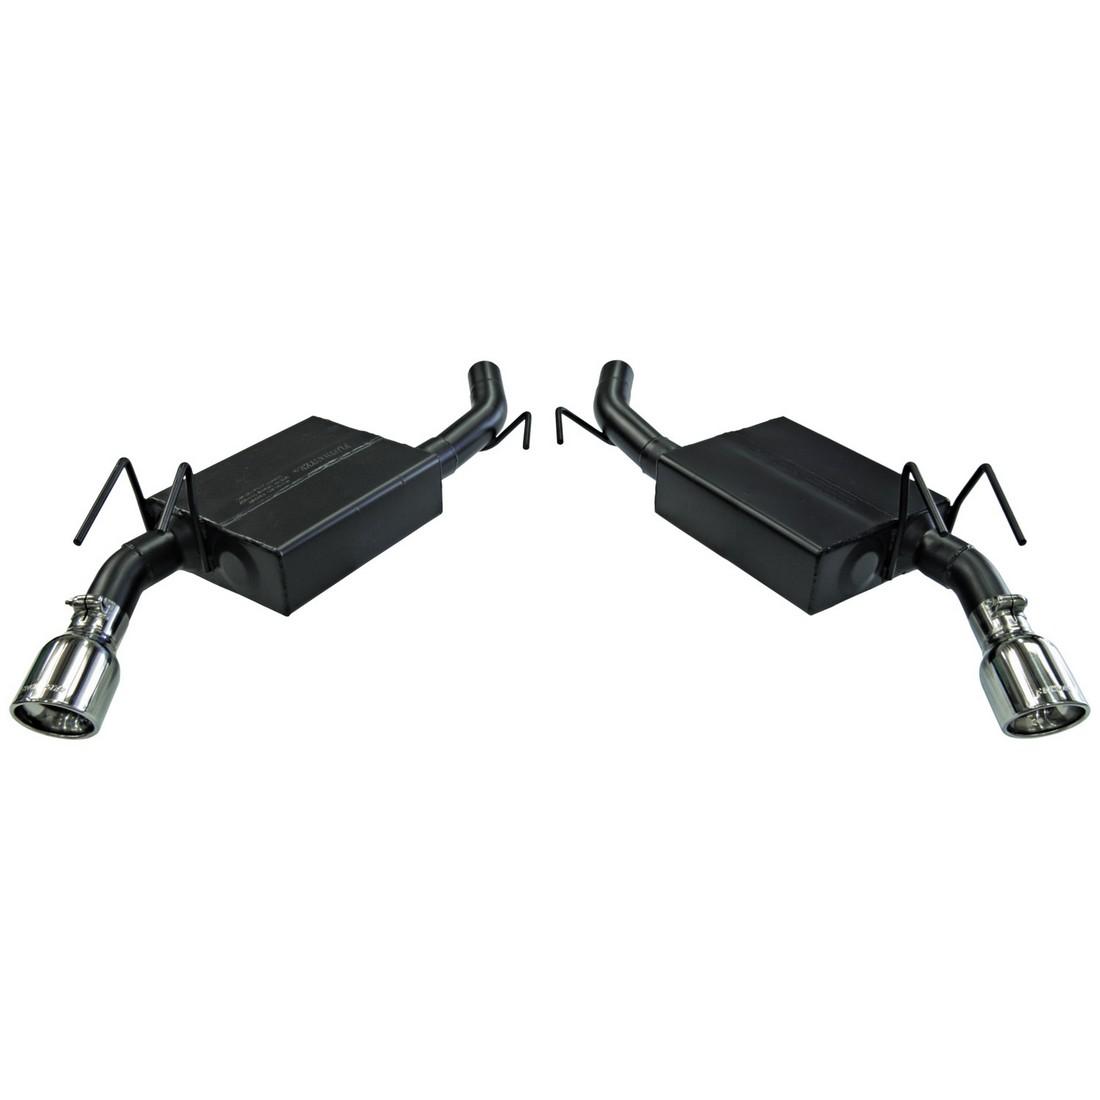 Ford Exhaust Systems